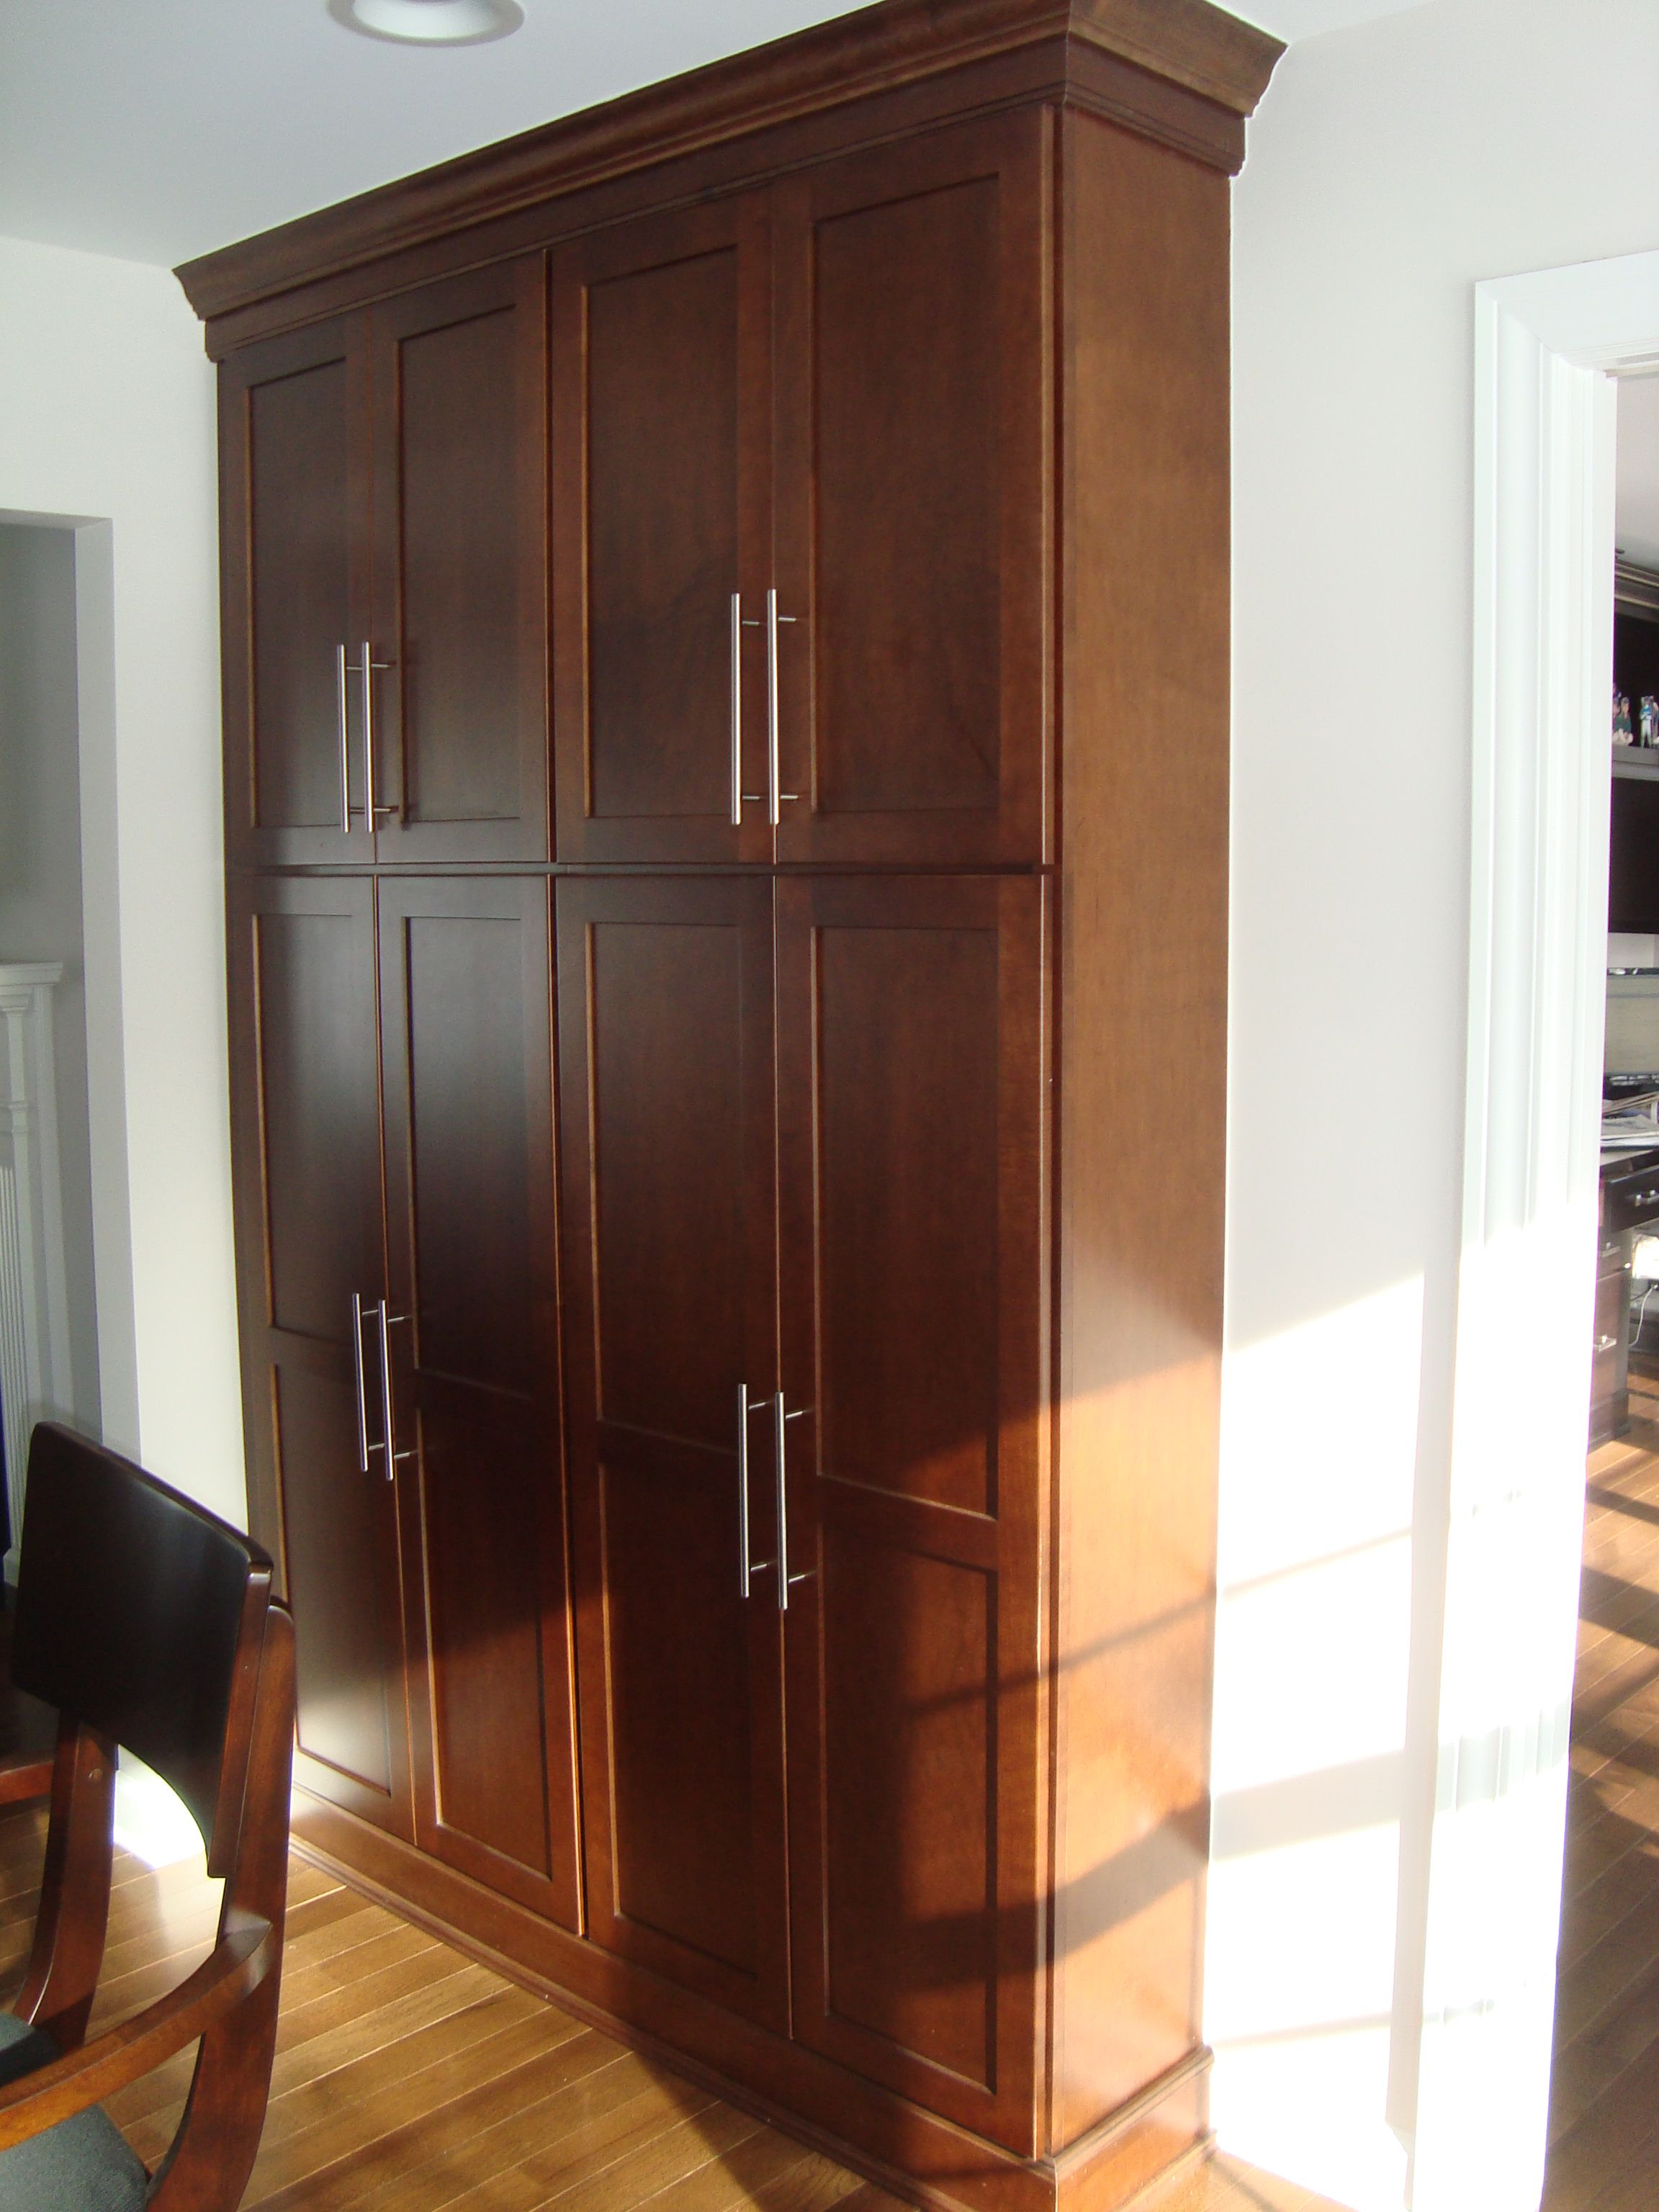 Tall Shallow Depth Pantries When We Take Down Part Of The Wall Into The Dinning Room This